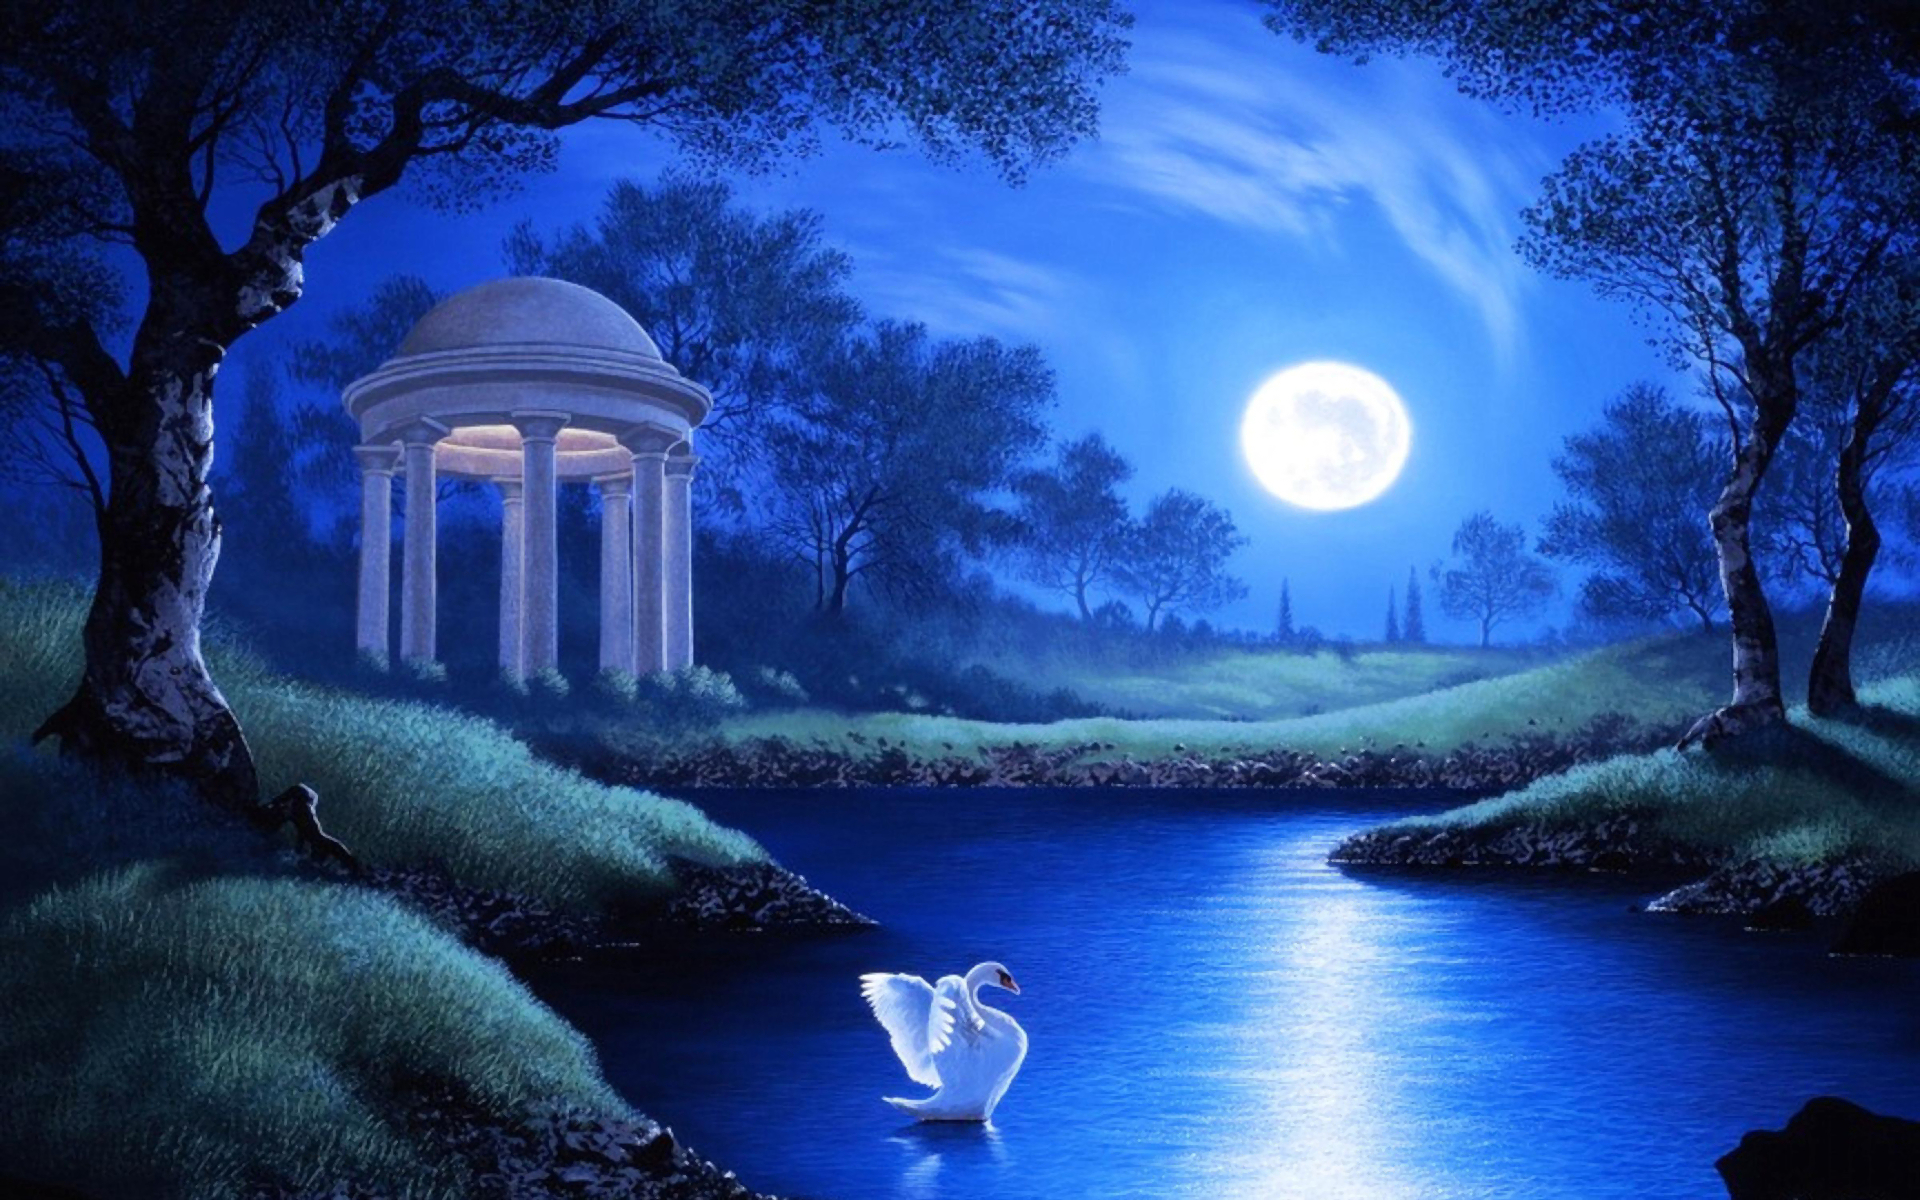 Black Lagoon Iphone X Wallpaper Swan In Garden Lake On Full Moon Night Hd Wallpaper